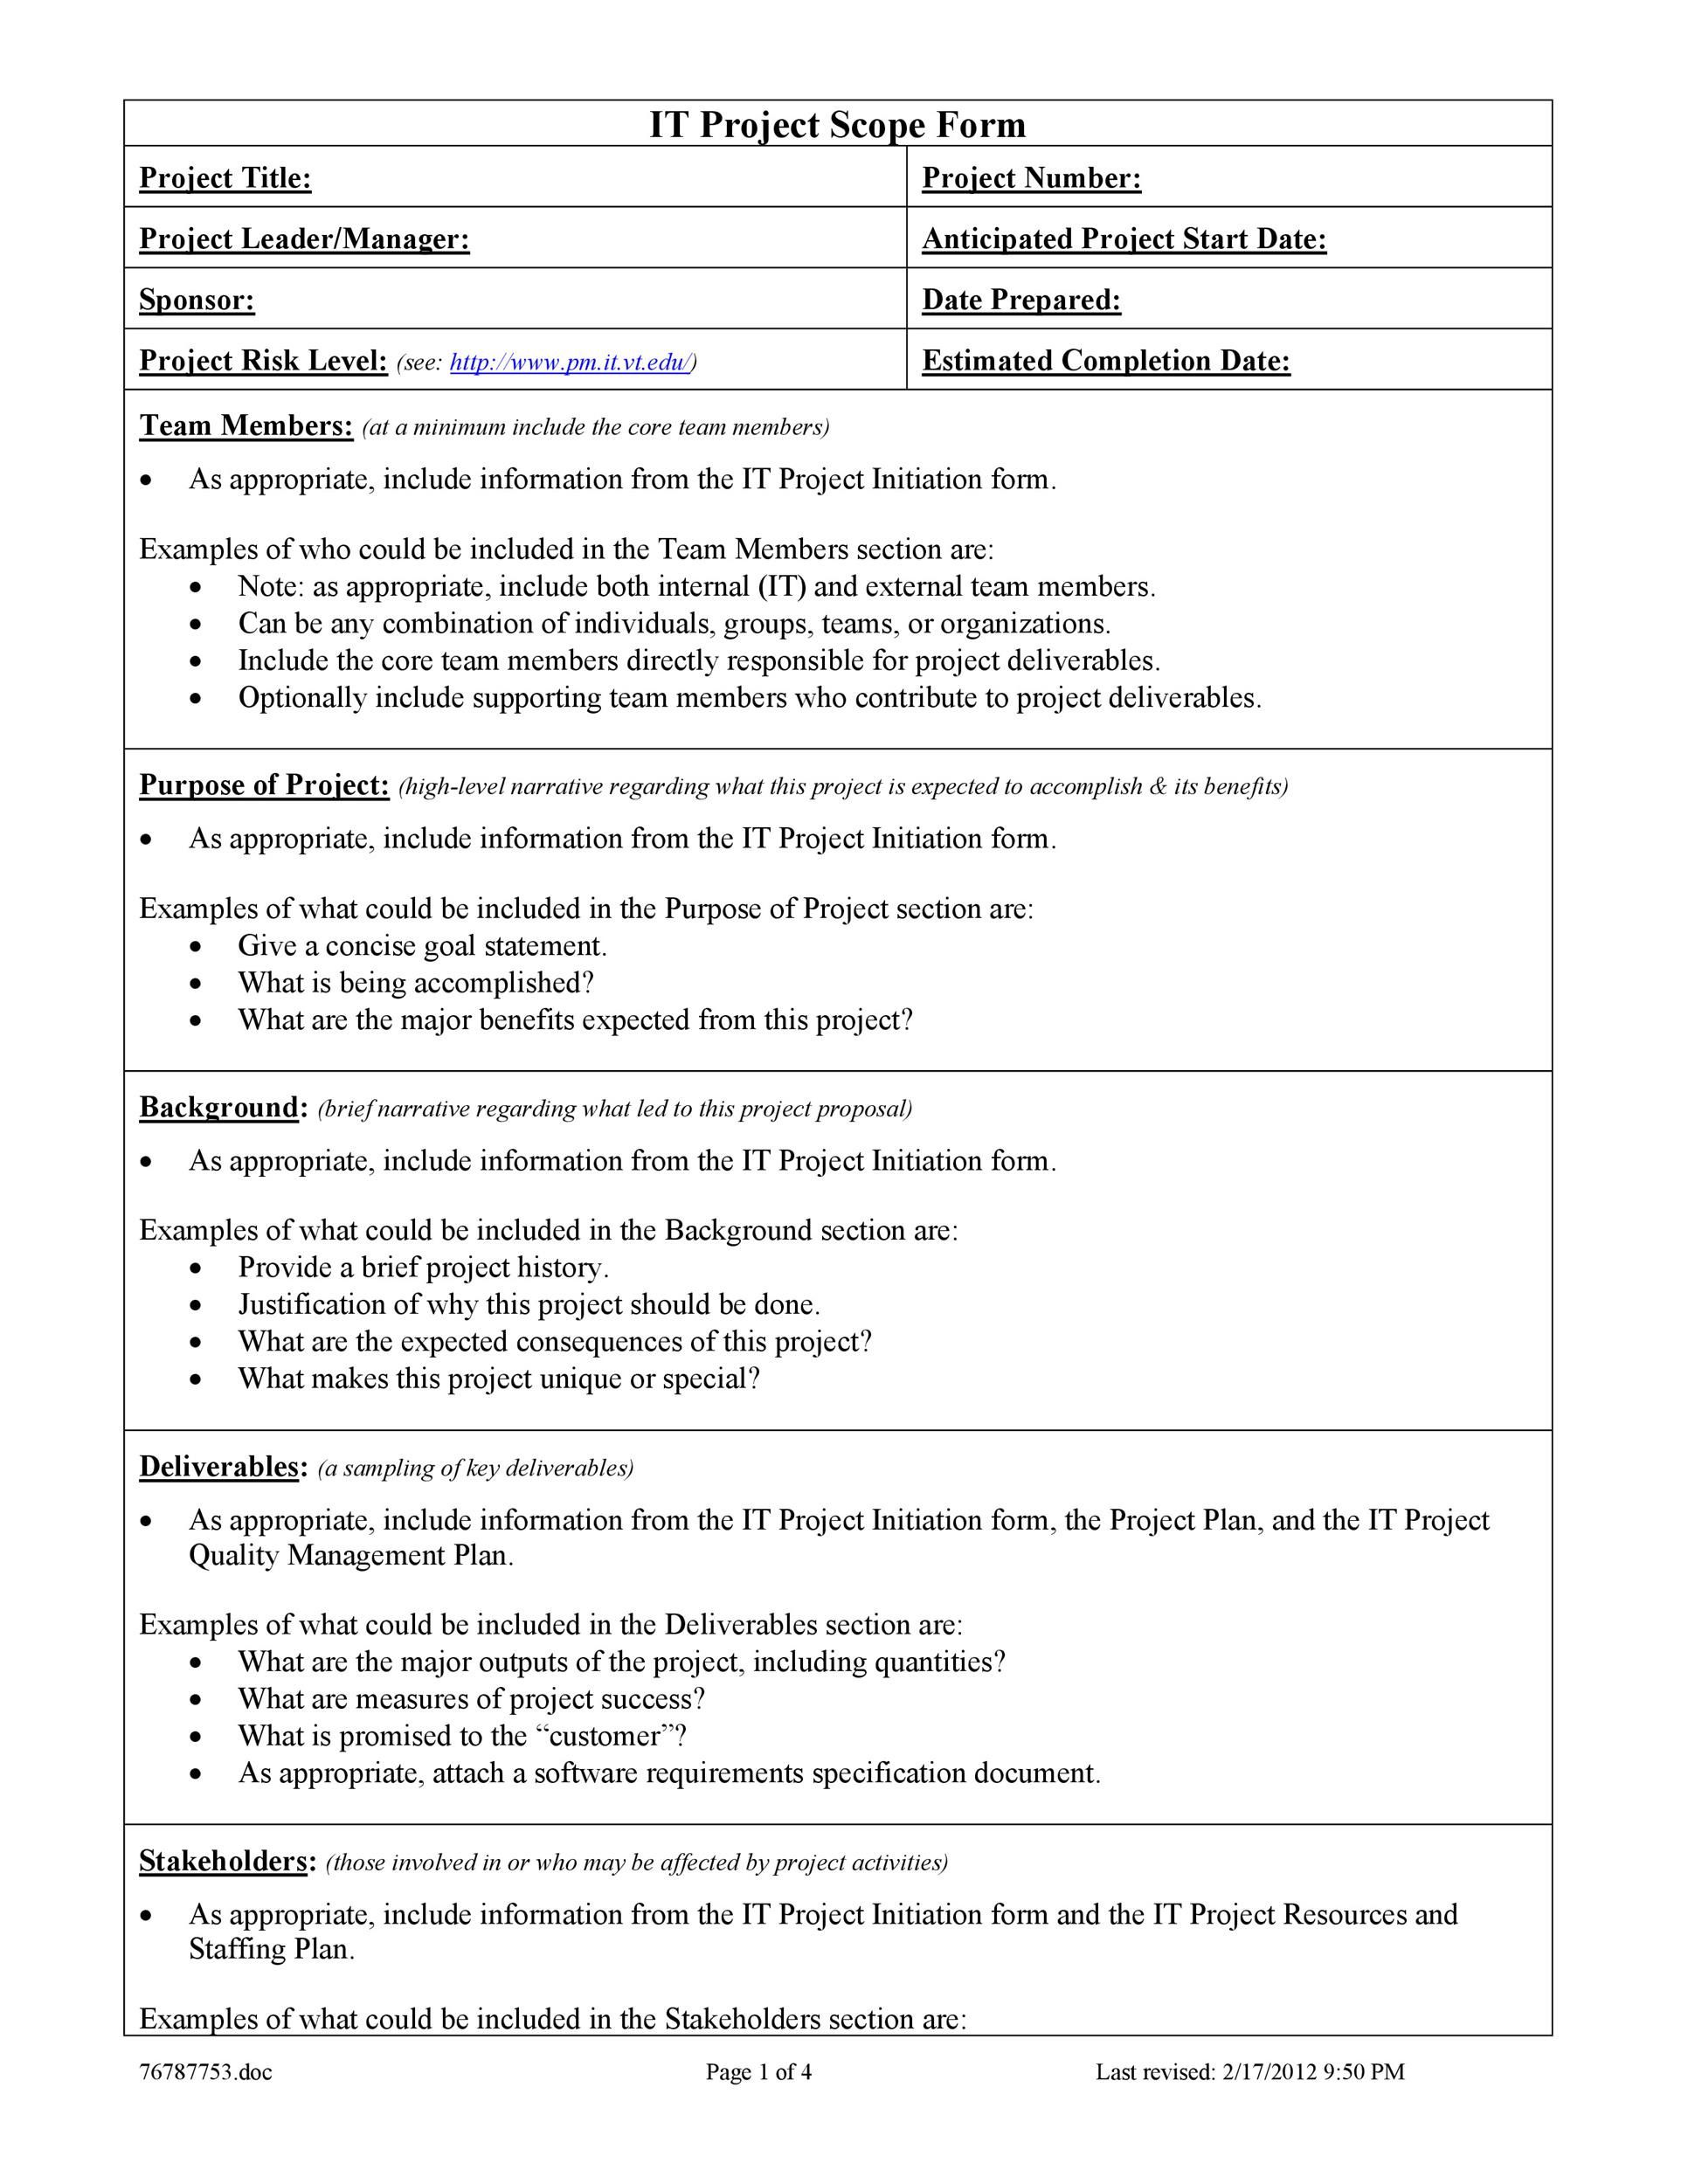 006 Shocking Project Scope Management Plan Template Free High Definition Full